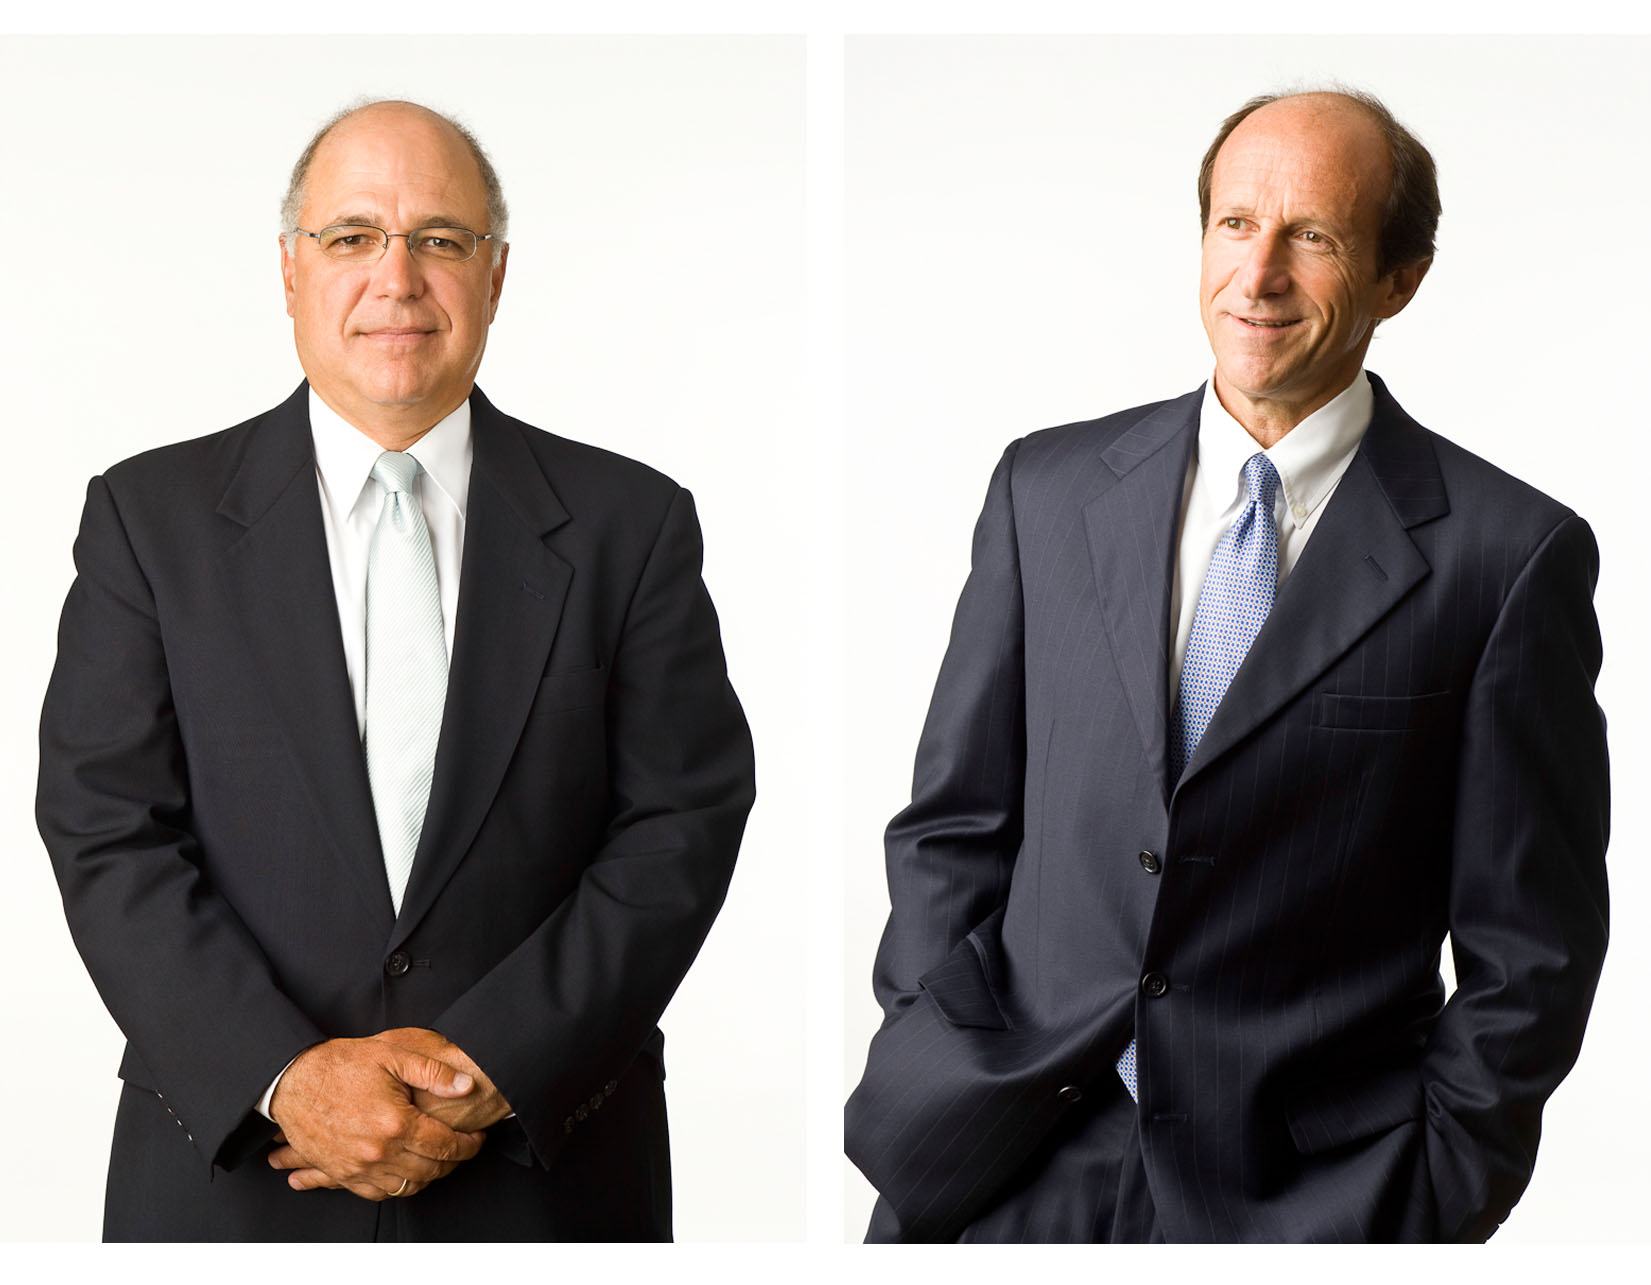 KBHR Attorney Portraits by Brad Feinknopf